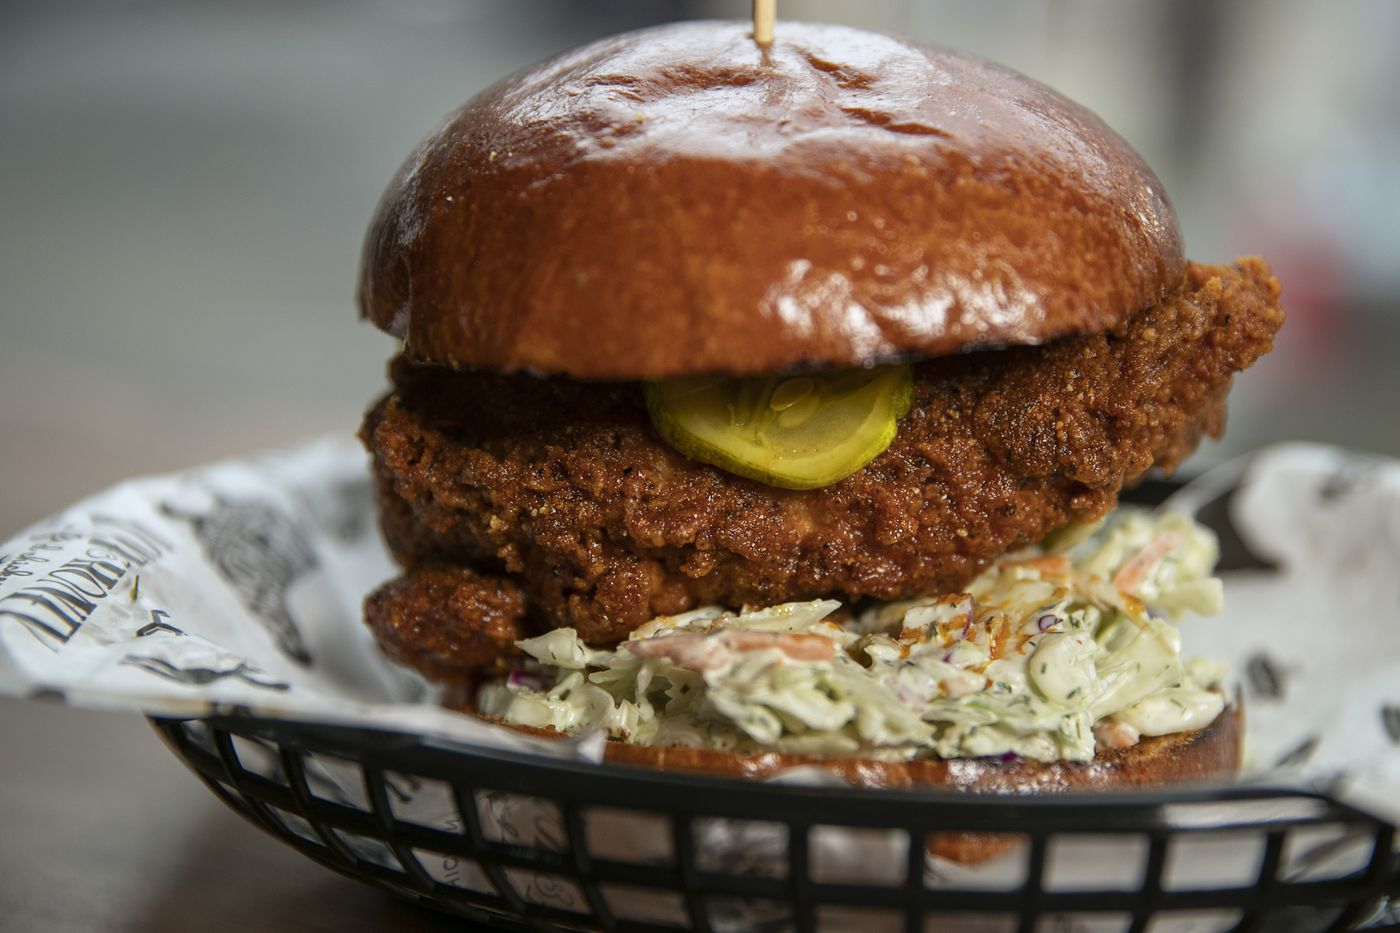 The Nashville hot chicken sandwich at Love & Honey Fried Chicken, 1100 N. Front St. Love & Honey has an exclusive delivery arrangement with the Caviar service.